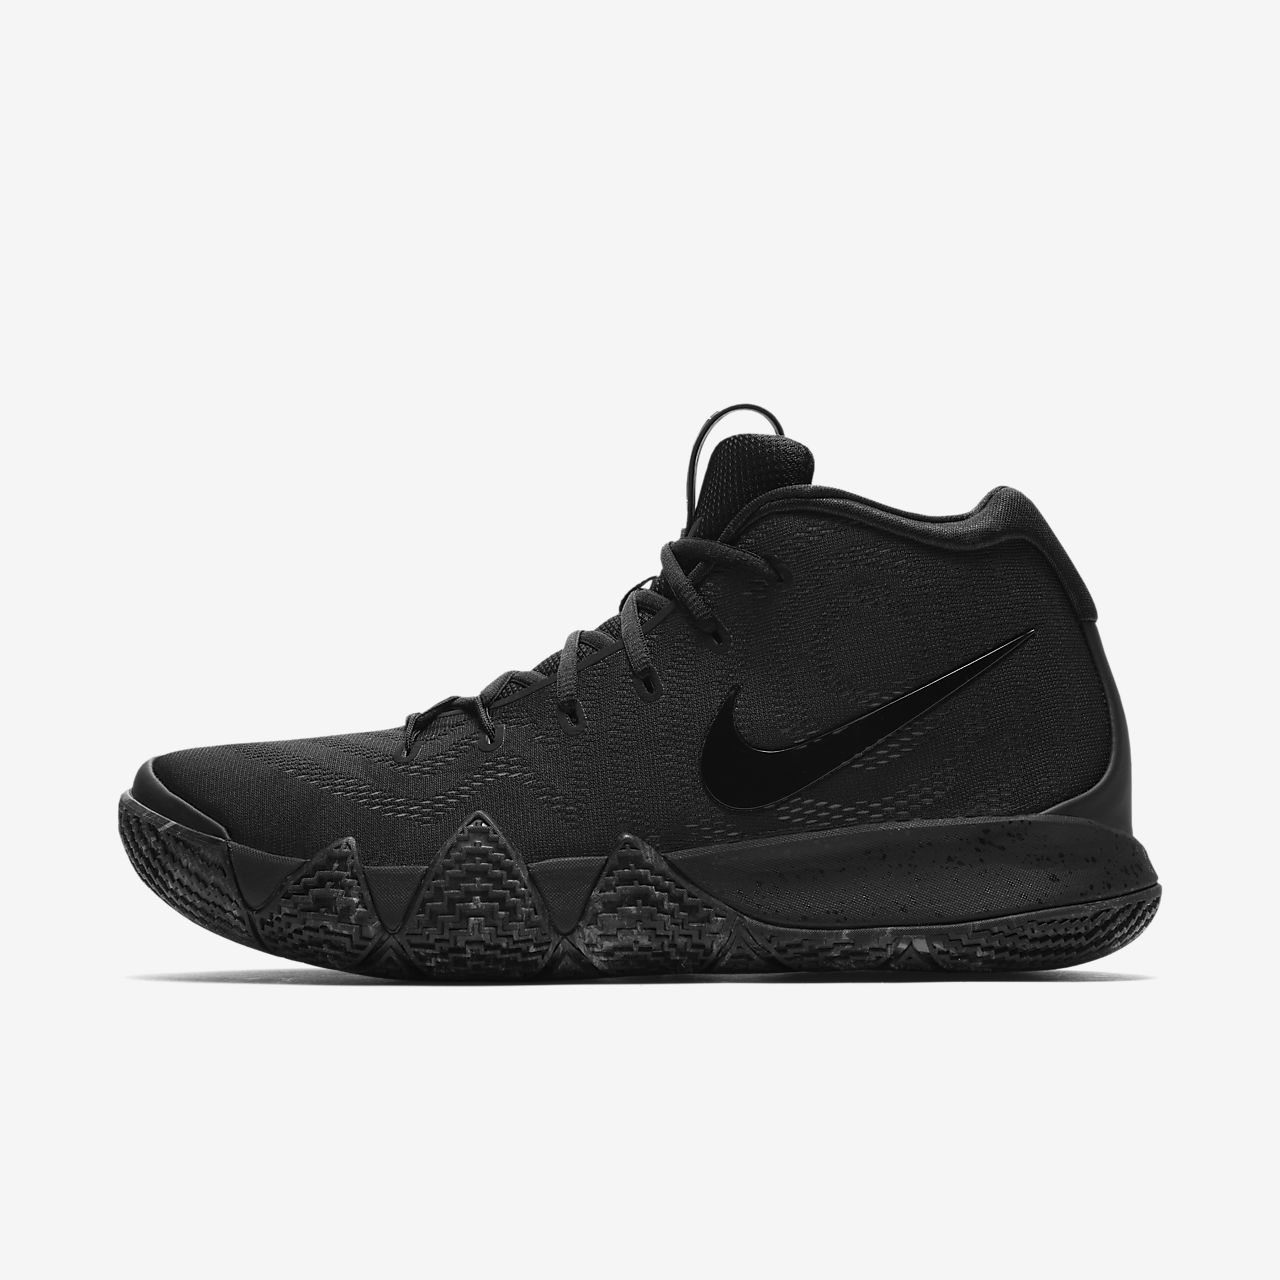 490959f1a1b Kyrie 4 Basketball Shoe. Nike.com NZ